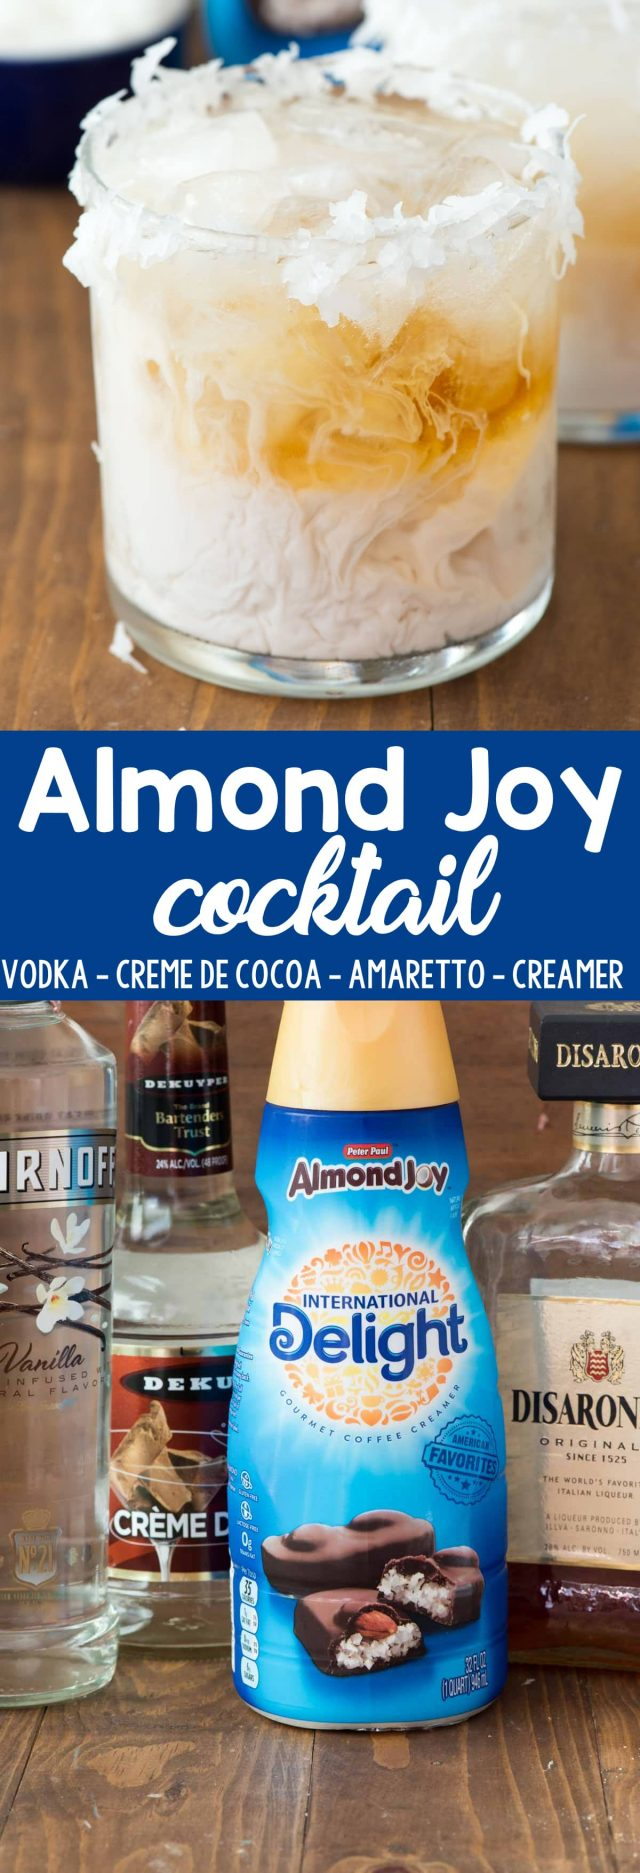 photo collage - Almond Joy Cocktail with a bottle of International Delight Almond Joy Creamer.